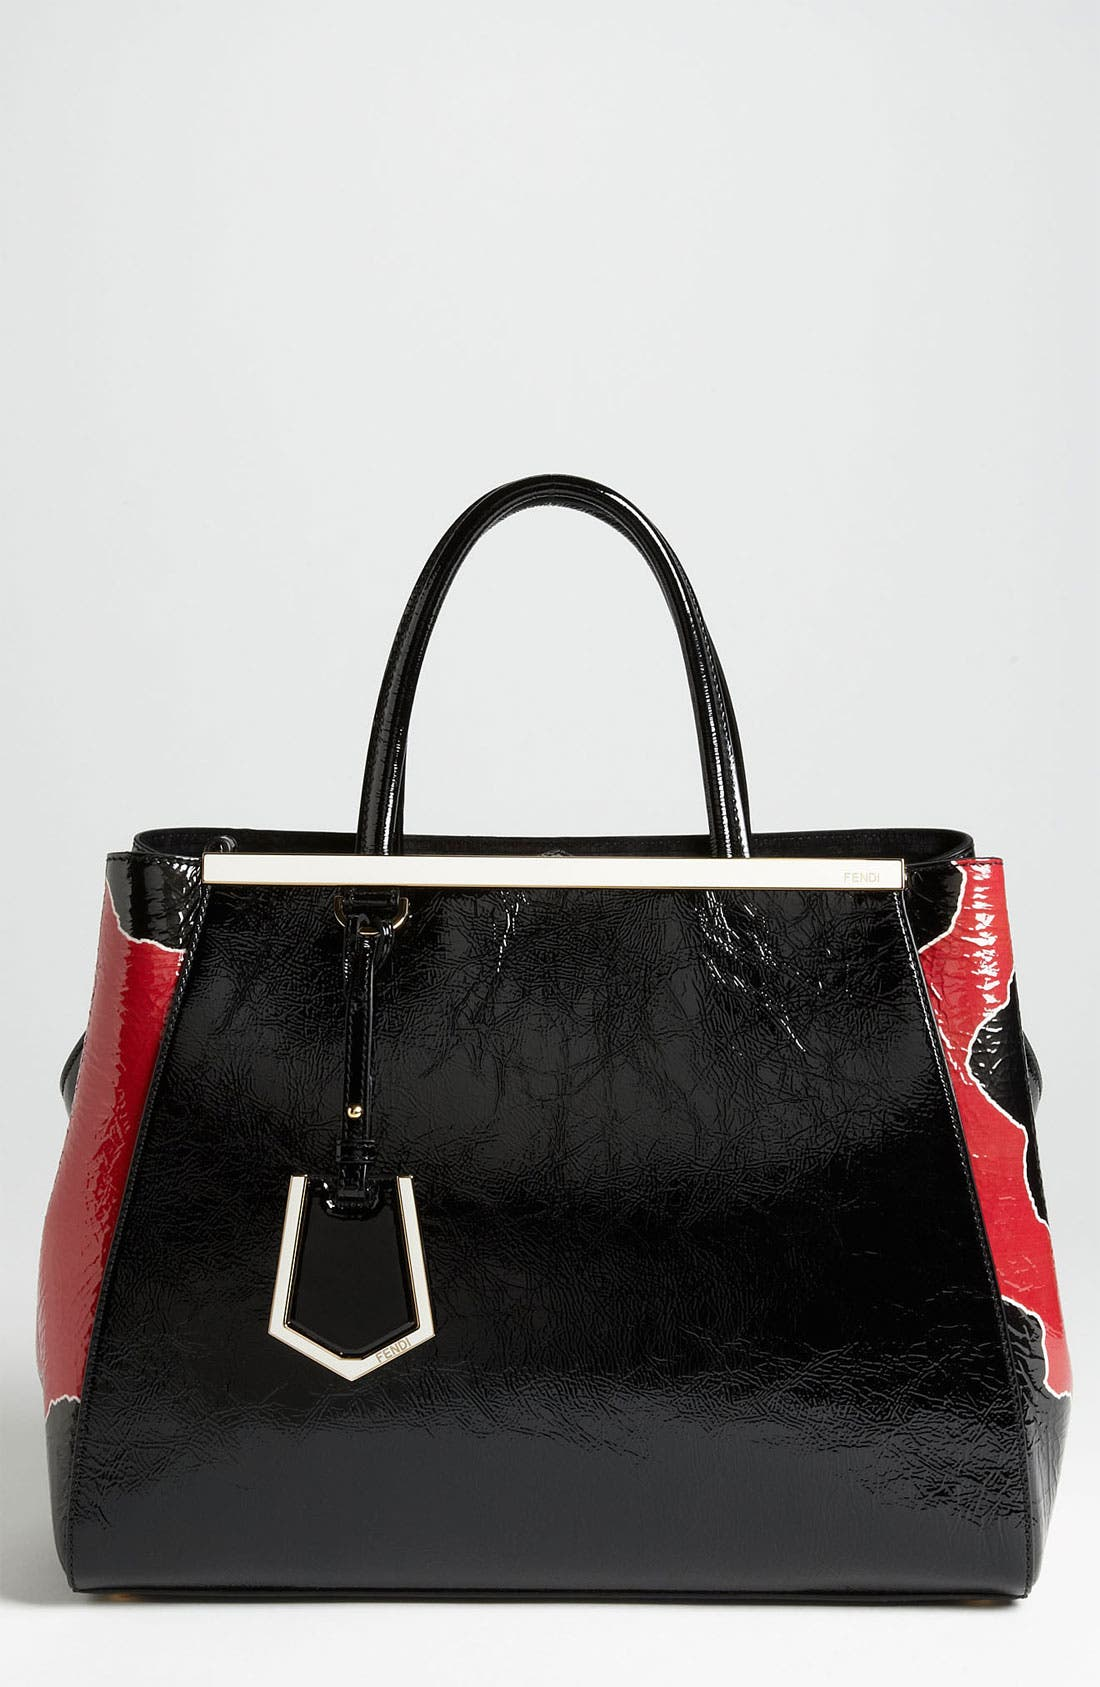 Alternate Image 1 Selected - Fendi '2Jours - Medium' Patent Leather Shopper